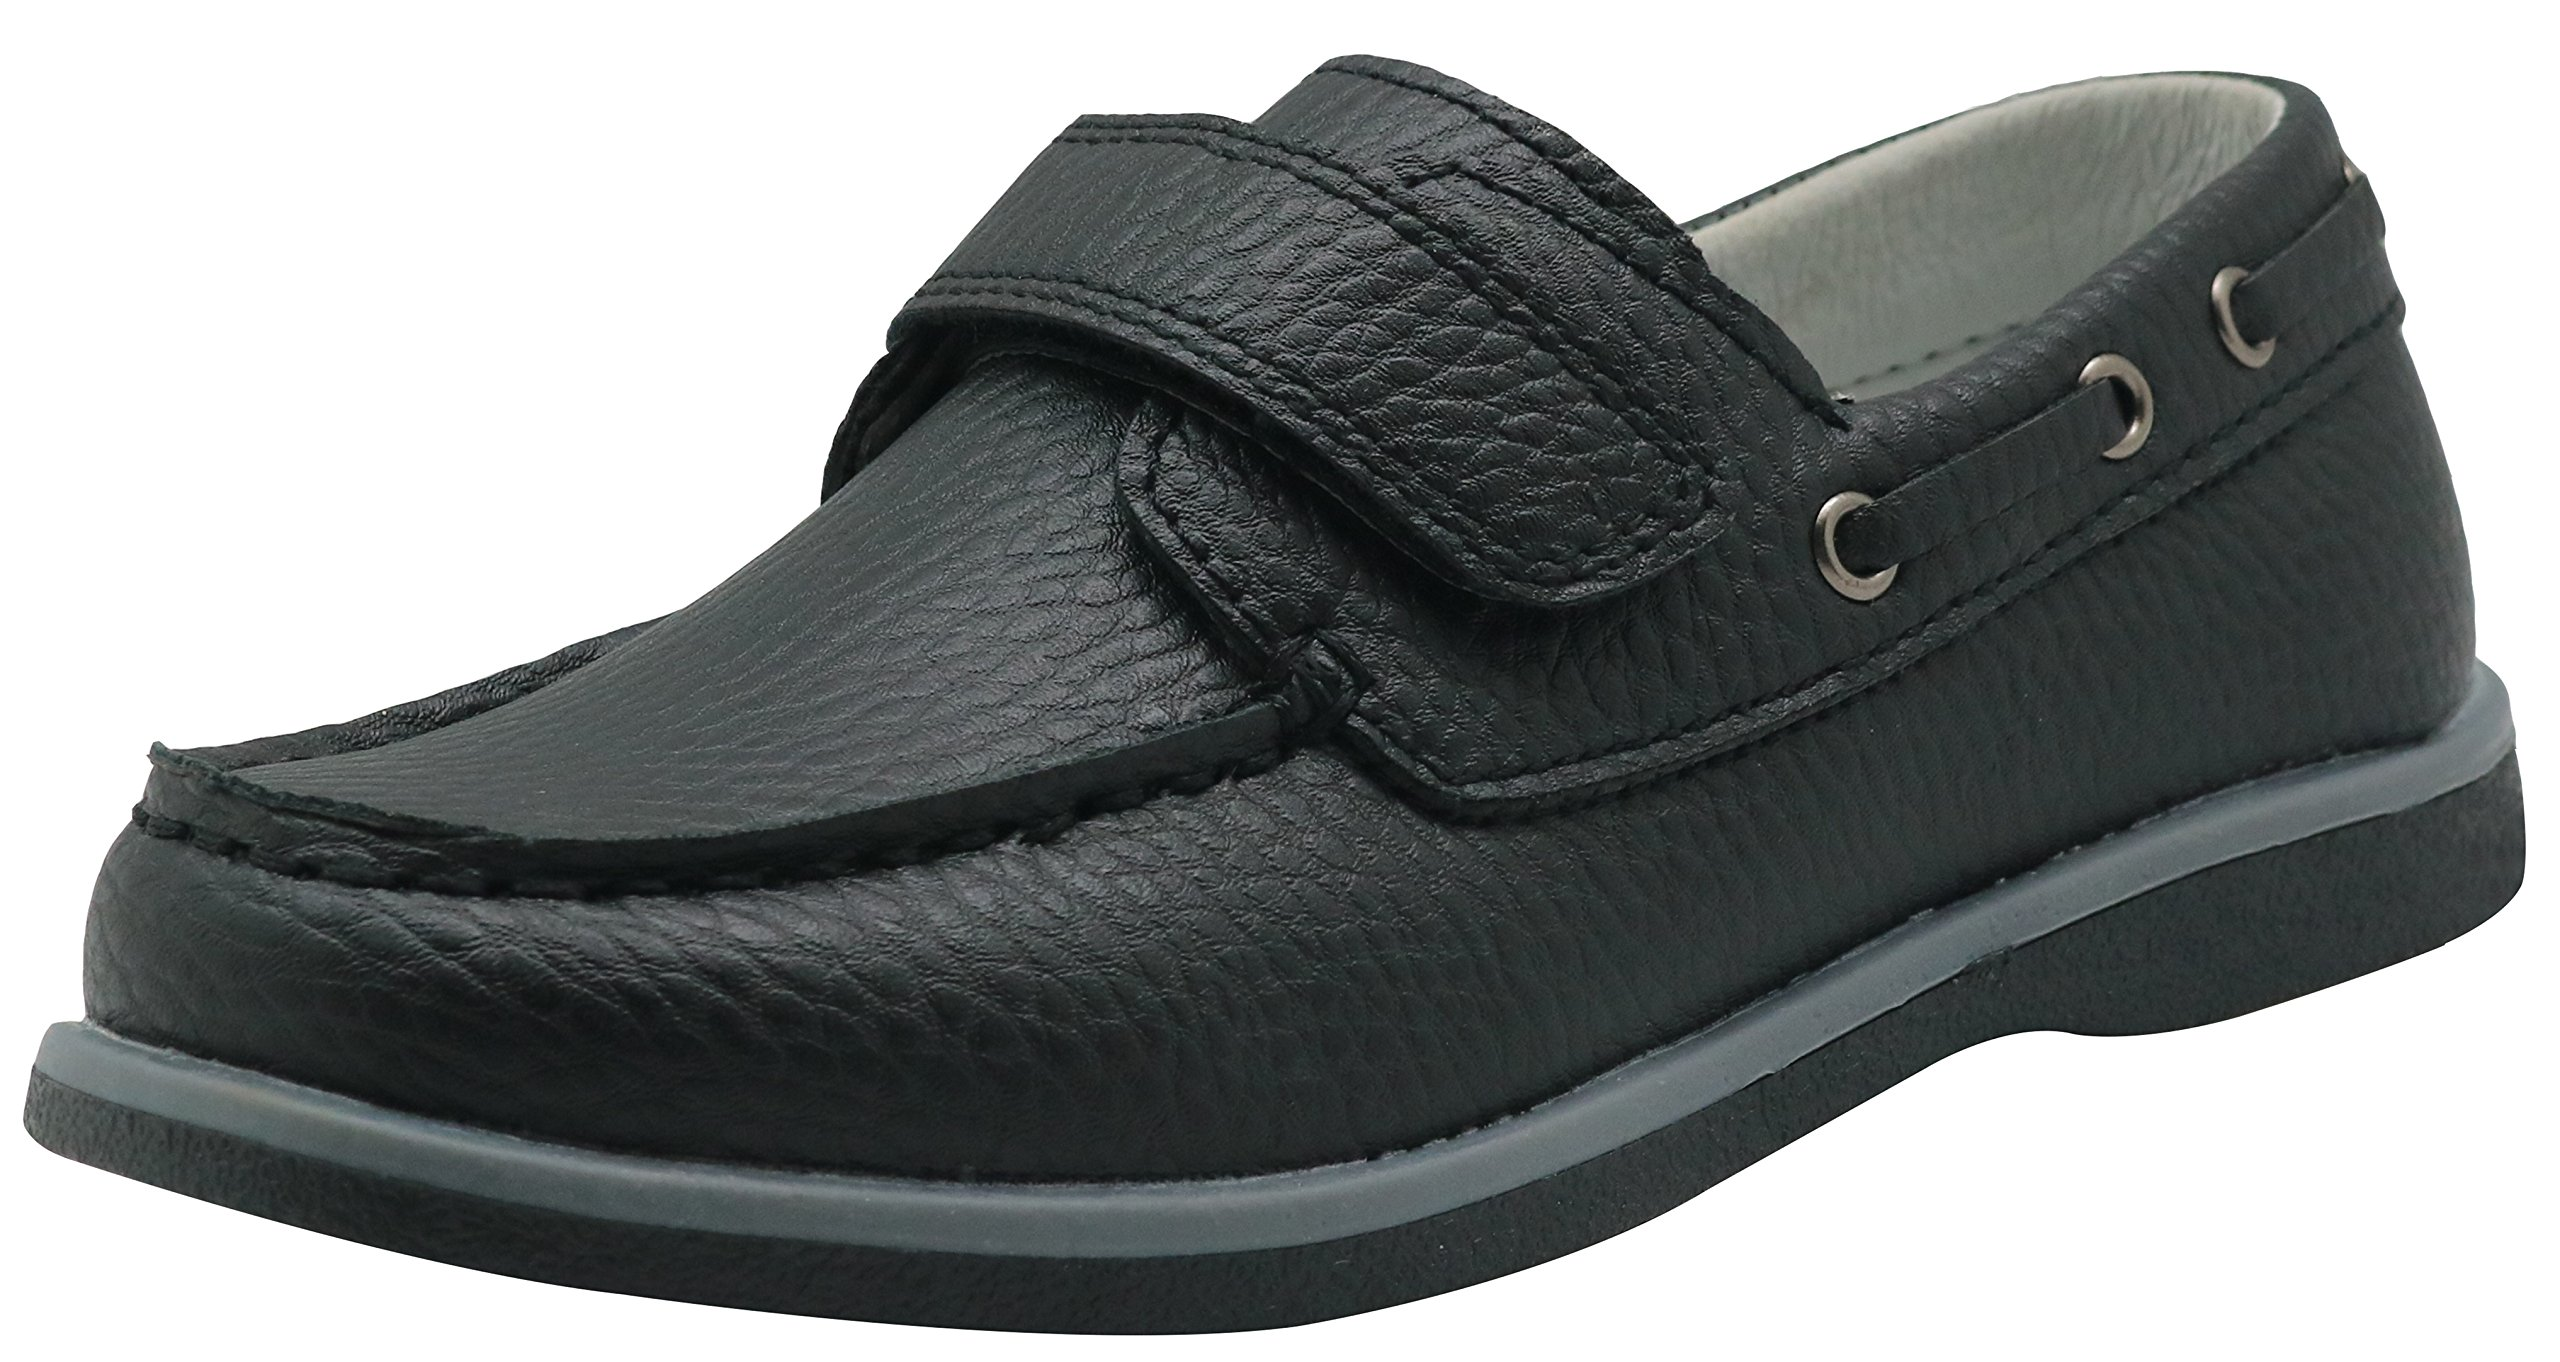 Apakowa Kids Boys Loafers Casual Slip On Boat Shoes with Strap (Toddler/Little Kid/Big Kid) (Color : Black, Size : 4.5 M US Big Kid)